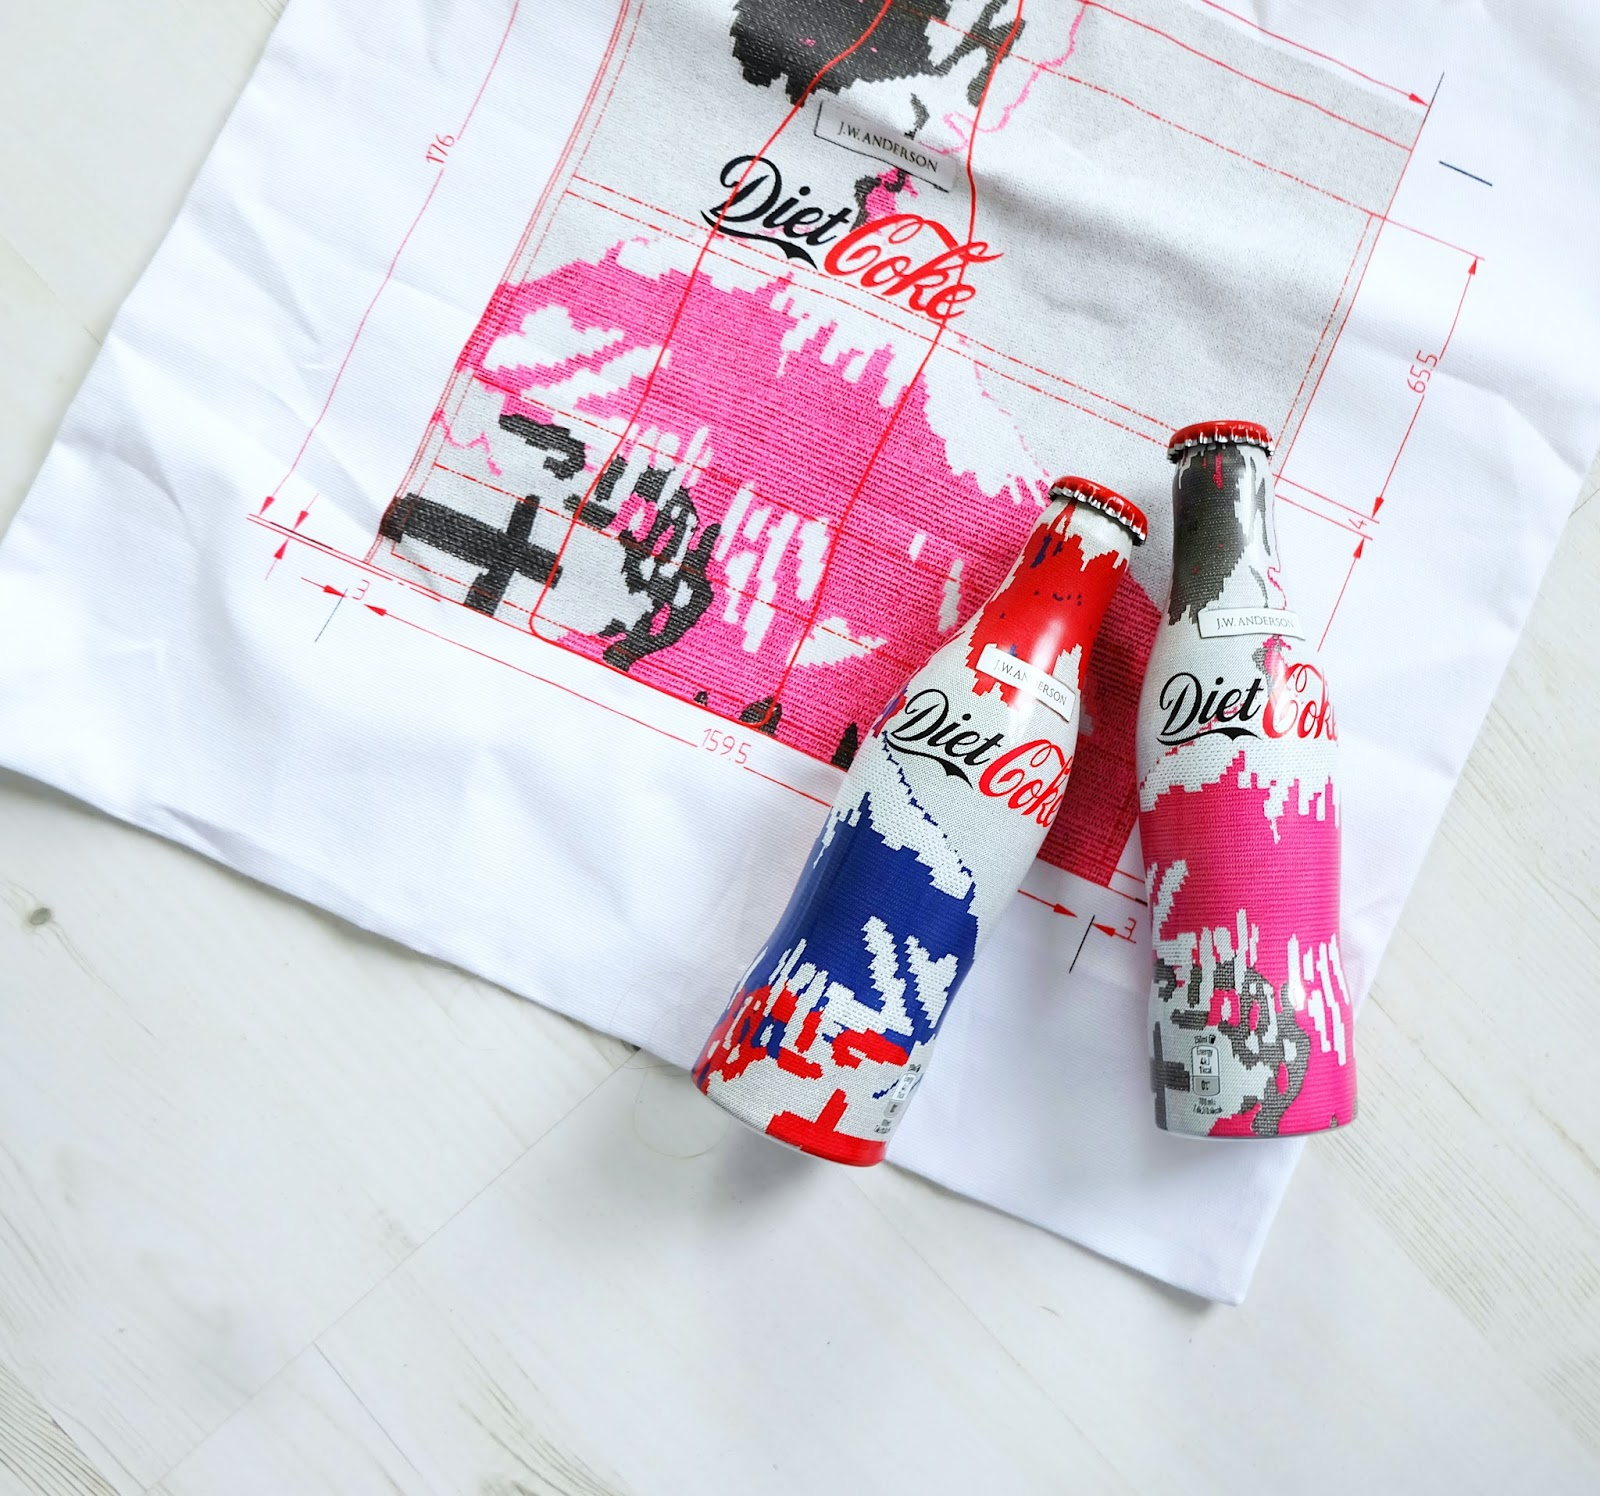 diet coke j.w. anderson collection